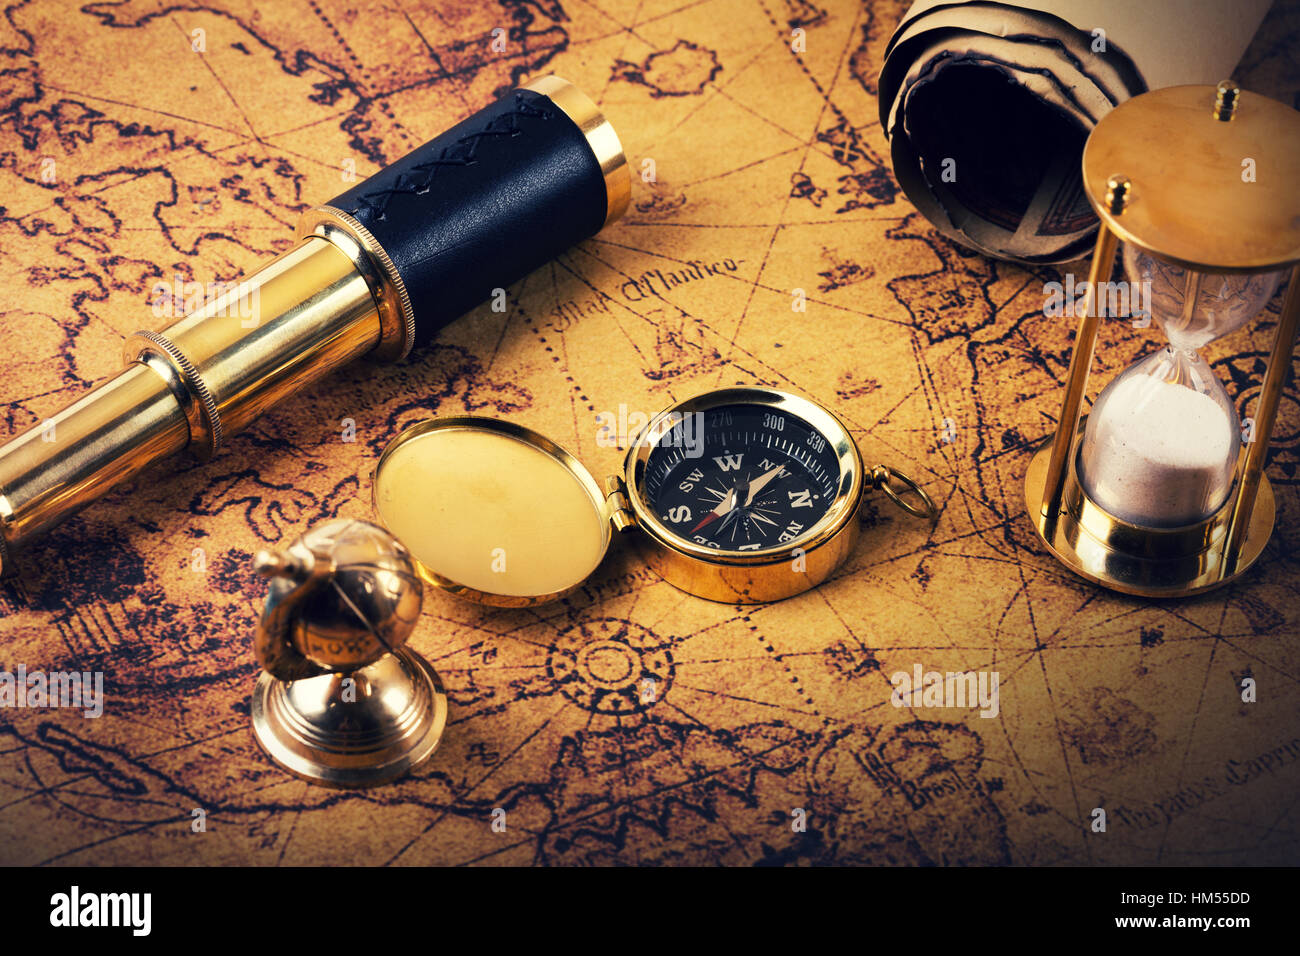 looking for adventures concept - vintage navigation items - Stock Image